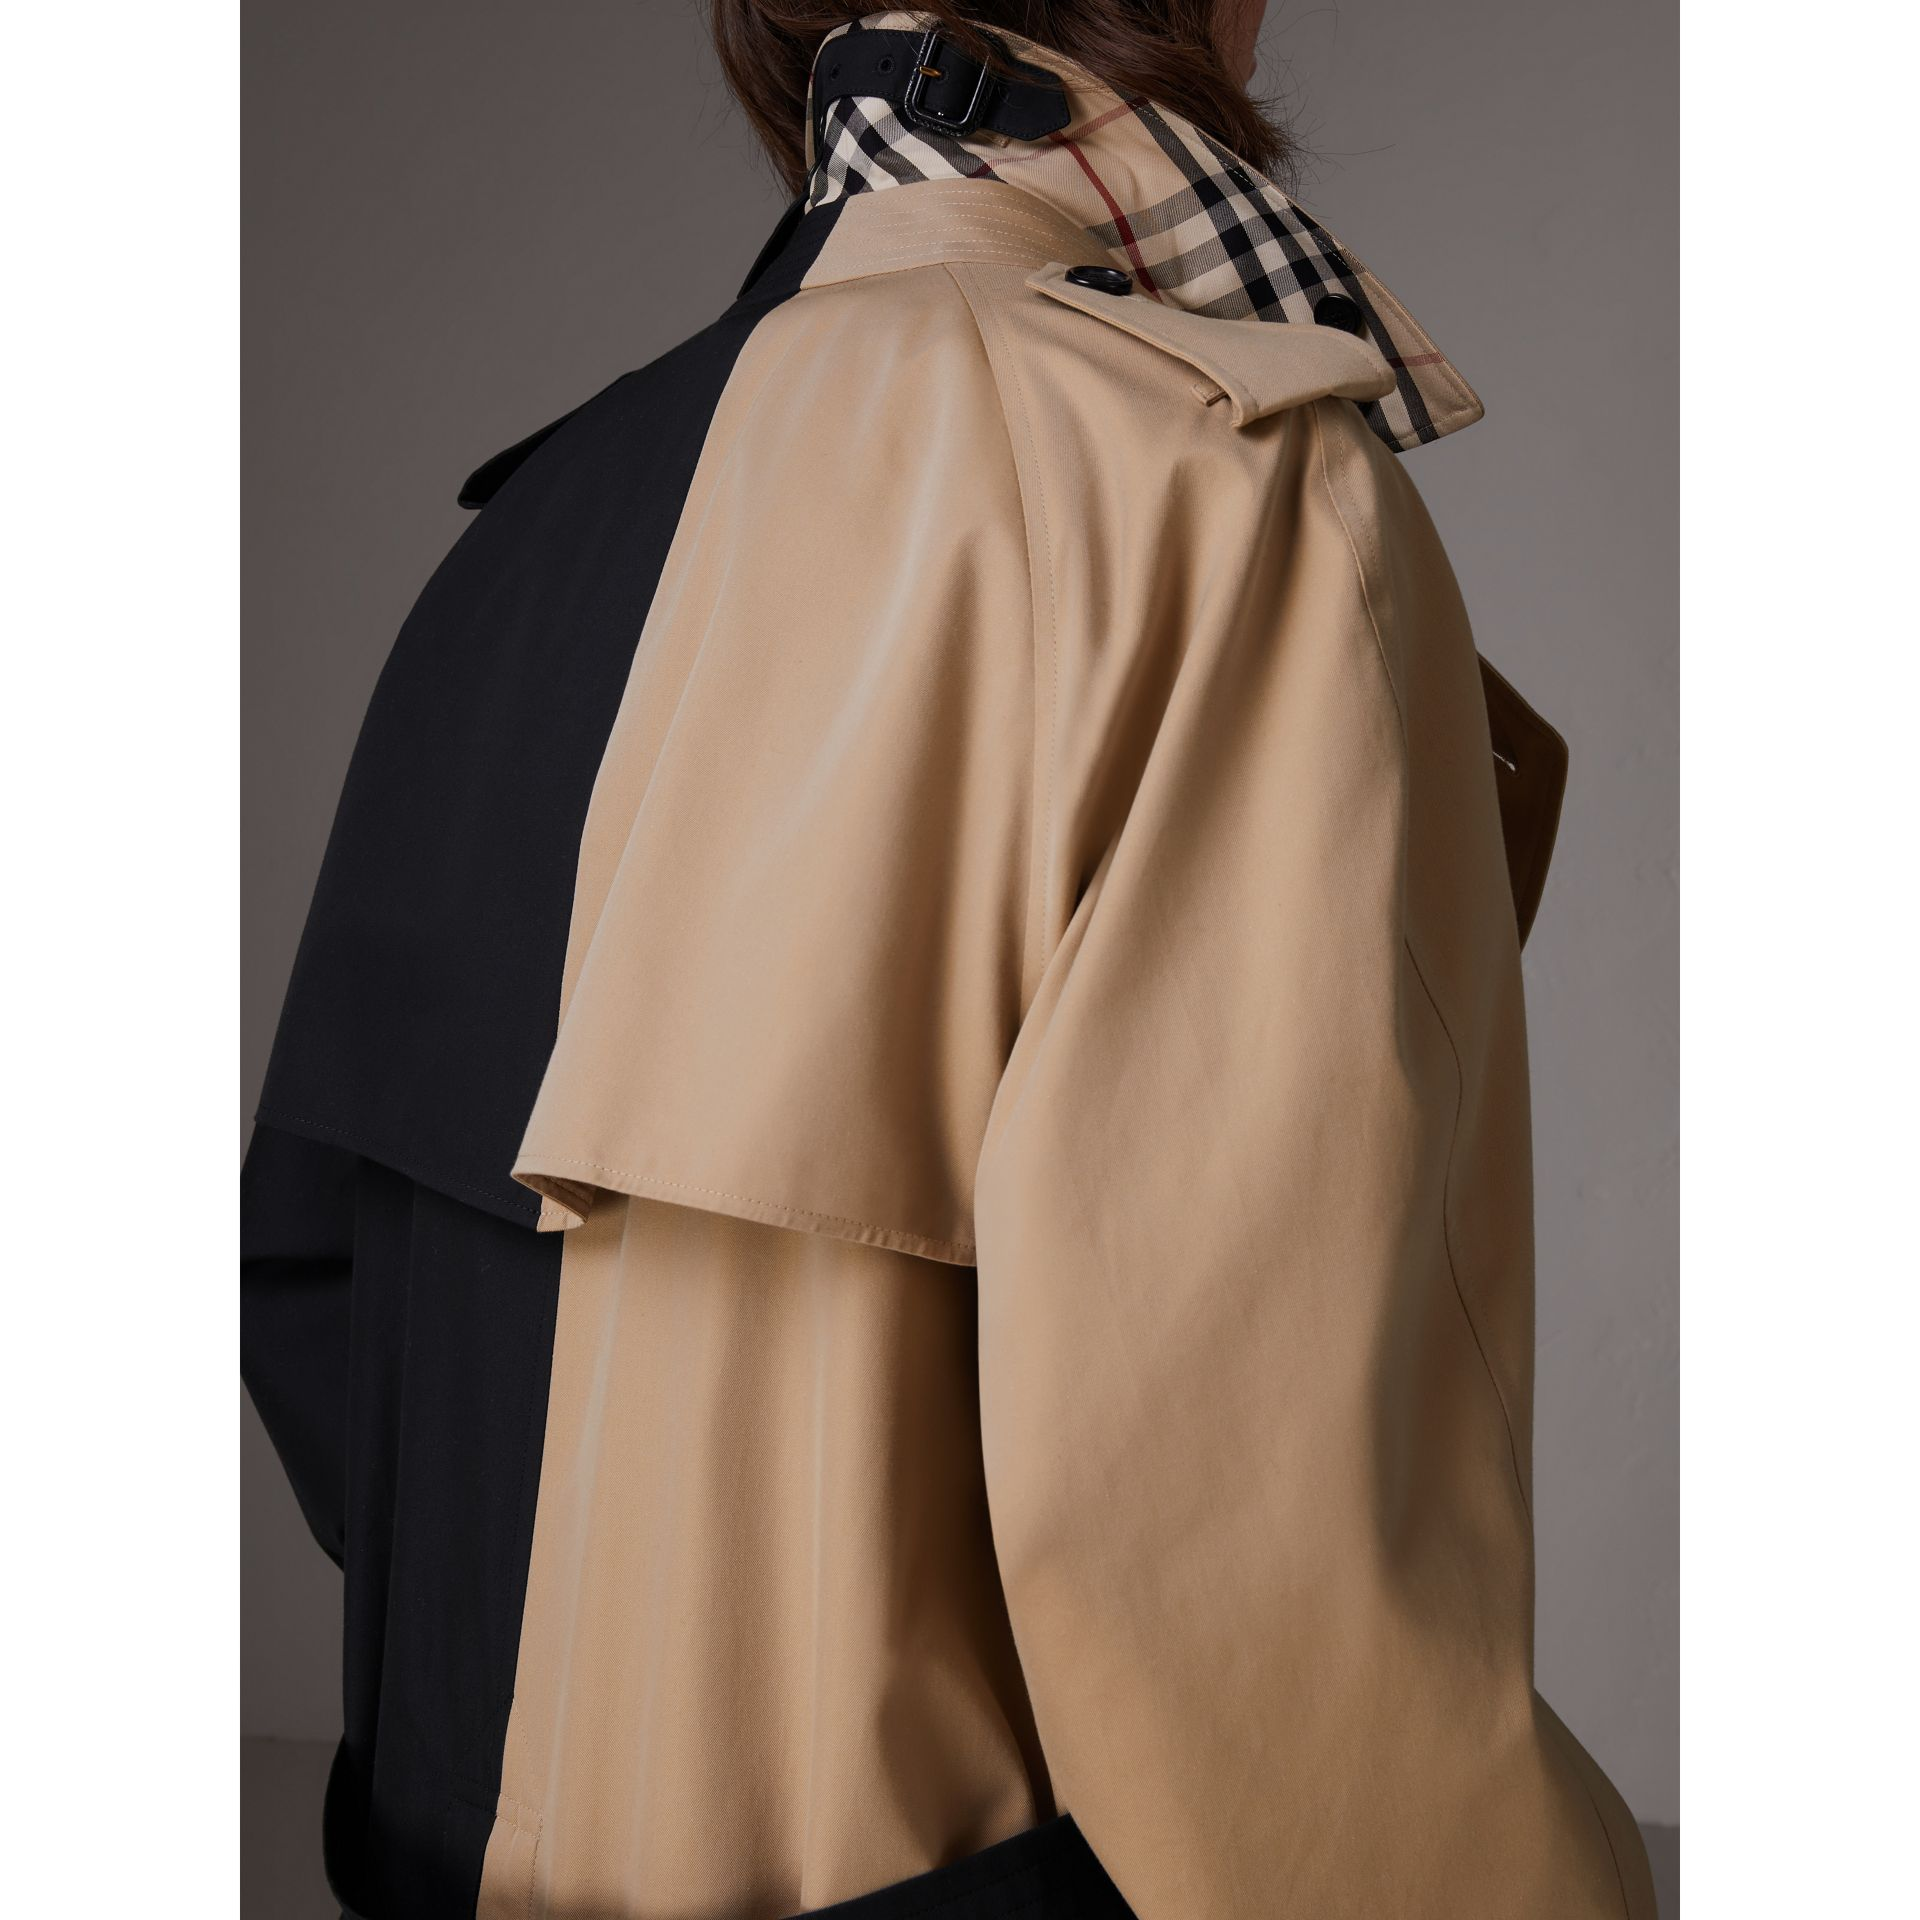 Gosha x Burberry Two-tone Trench Coat in Honey | Burberry - gallery image 5